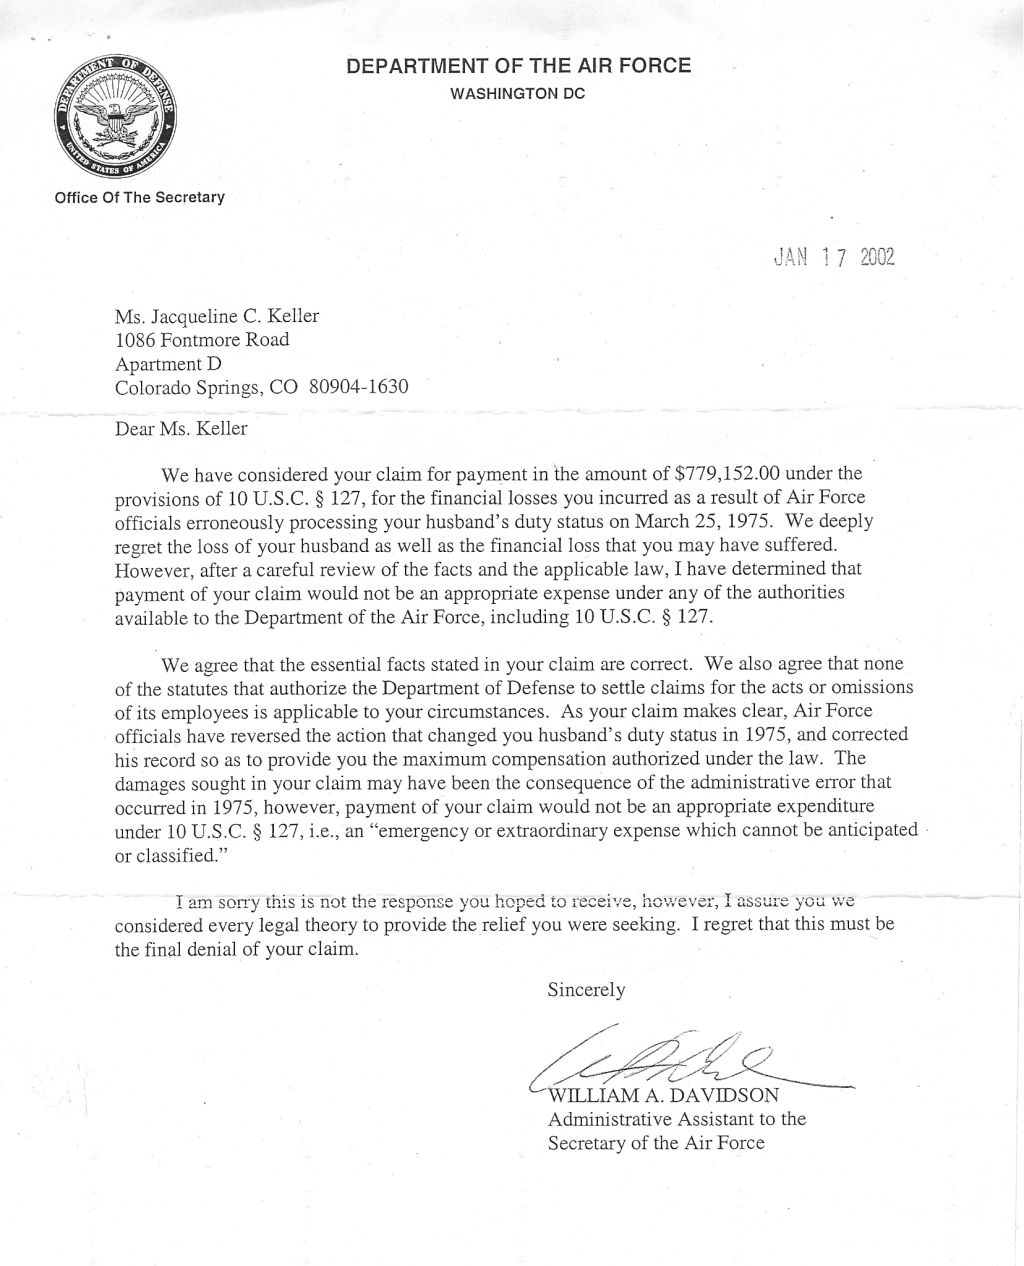 2002 first denial by department of the air force we agree that the essential facts in your claim are correct